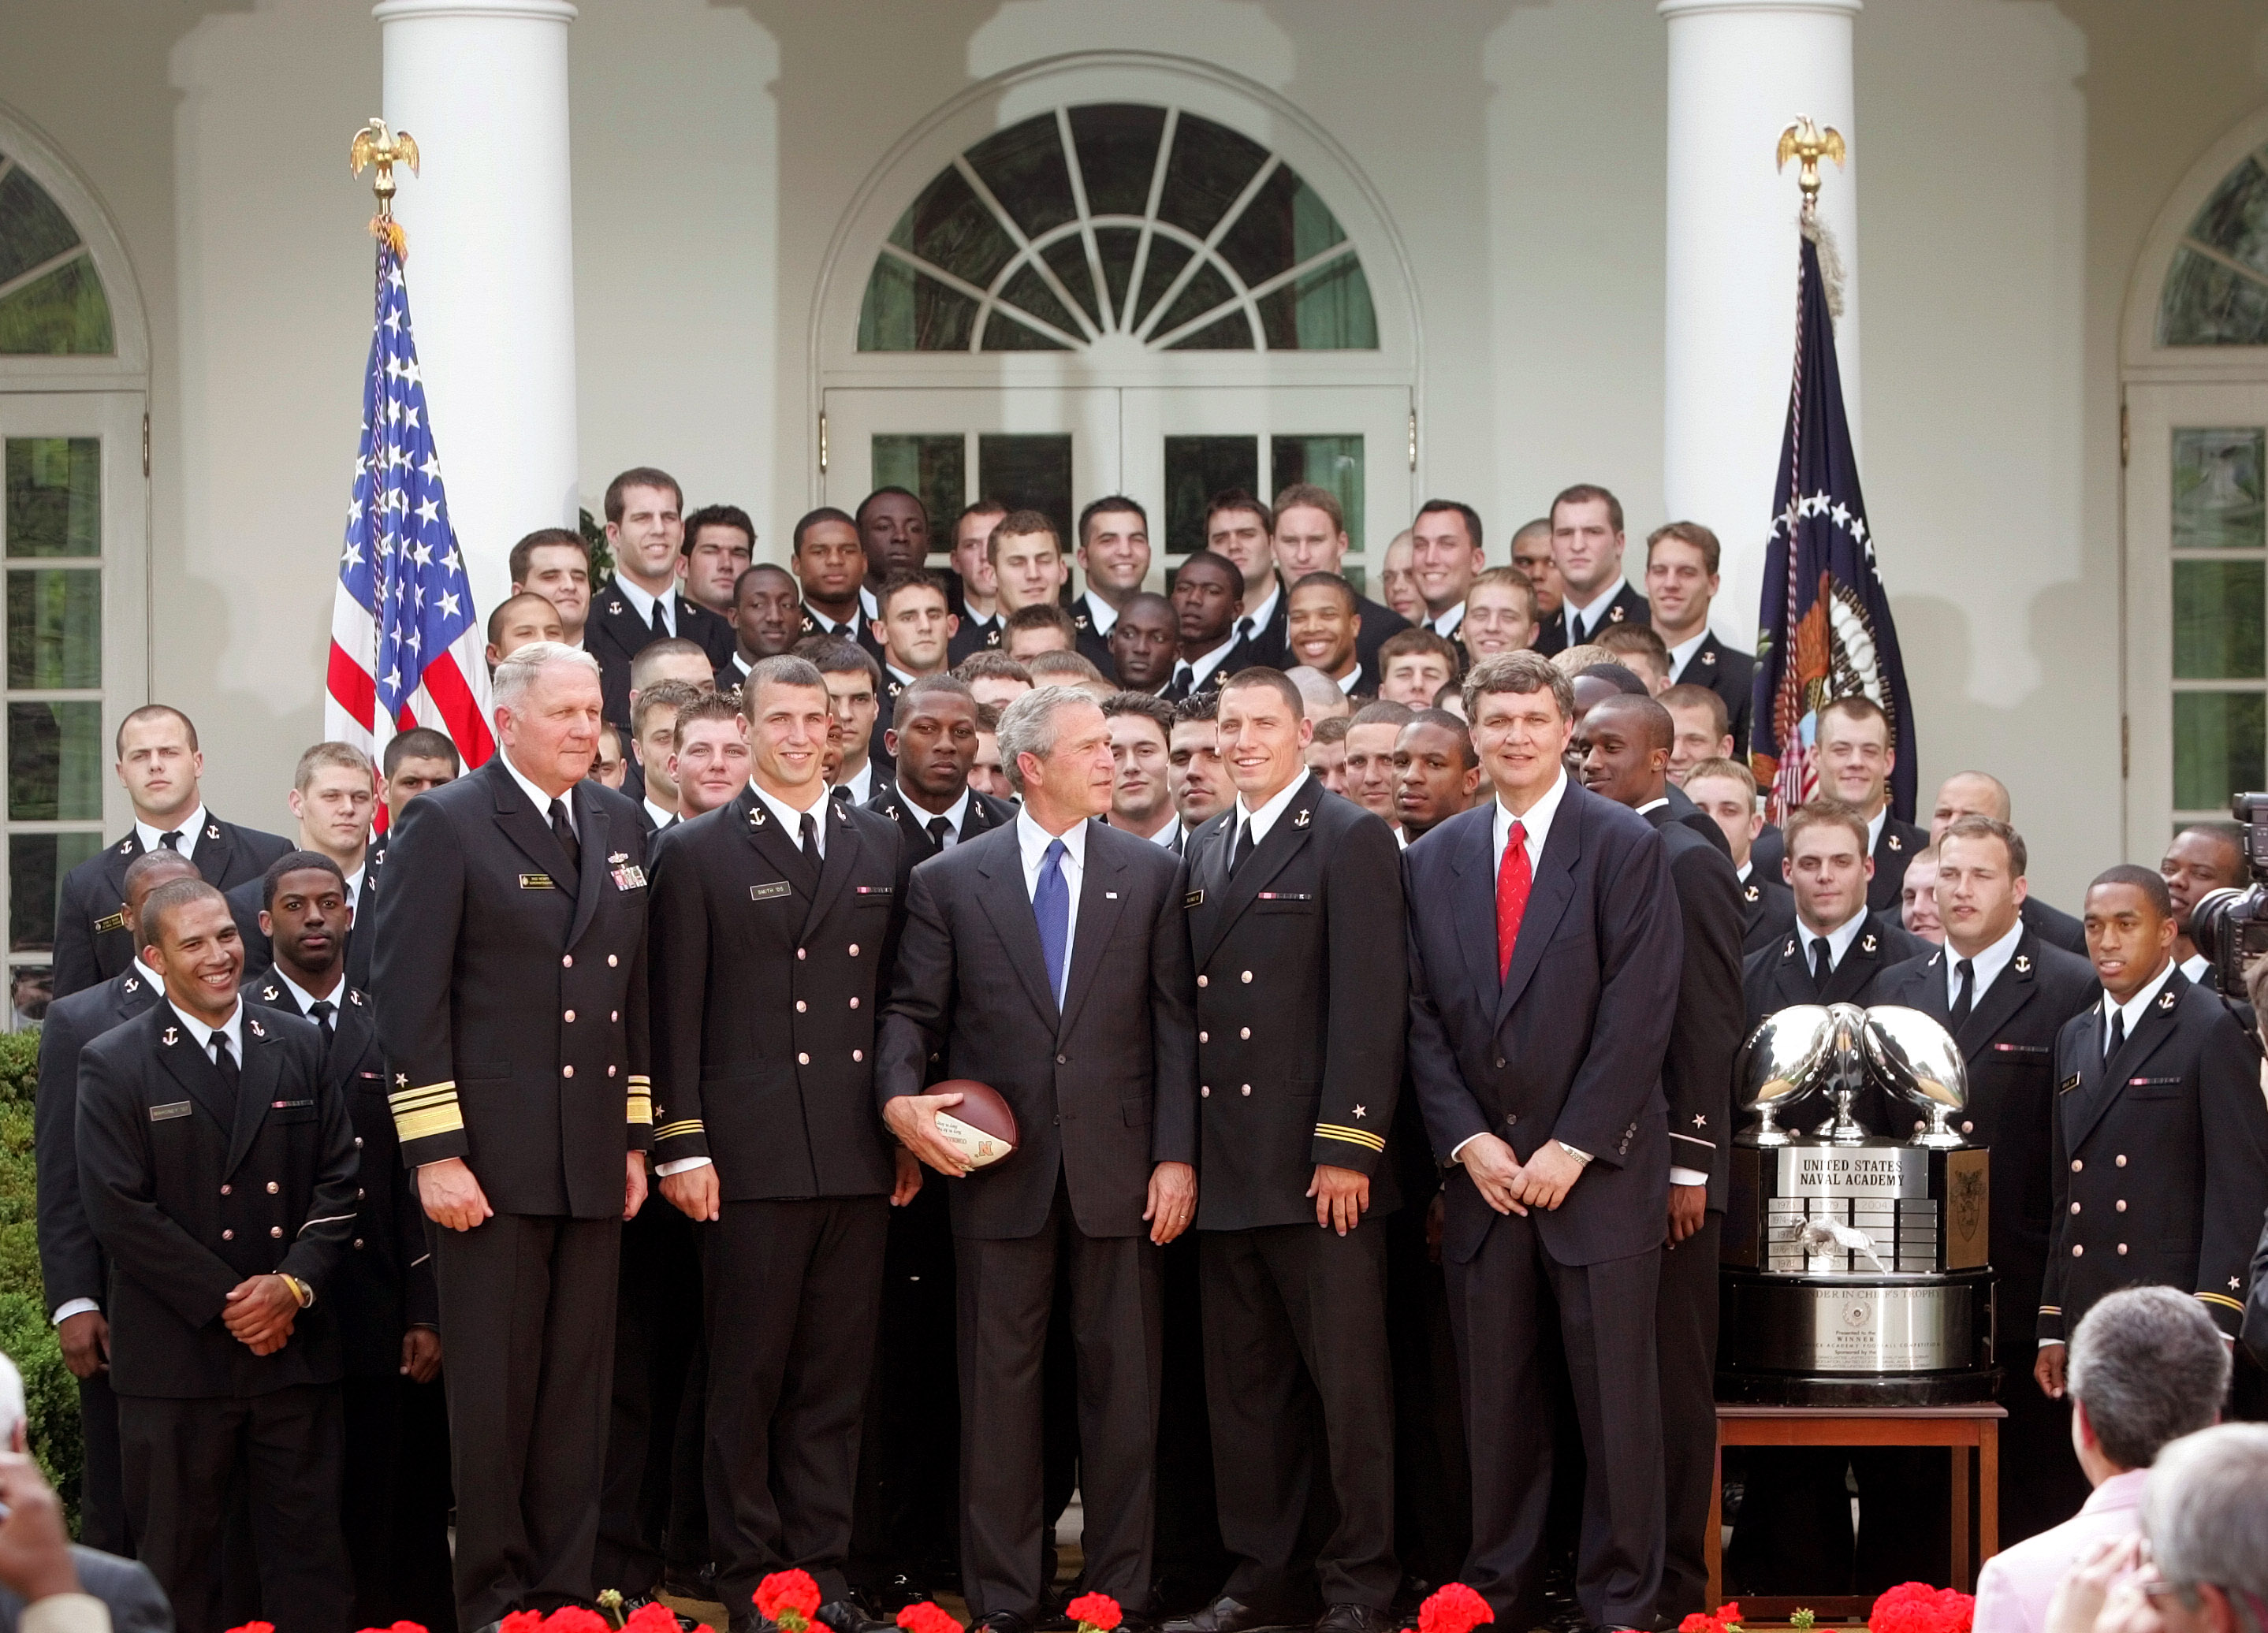 President Bush, center, poses for a photograph with members of the U.S. Naval Academy football team after the presentation of the Commander-In-Chief's Trophy in Rose Garden at the White House Wednesday, April 20, 2005 in Washington. Bush hailed the Naval Academy football team for winning the commander-in-chief's trophy, the first time since 1981. The trophy goes each year to the team with the best record in games among the three service academies. (AP Photo/Pablo Martinez Monsivais)